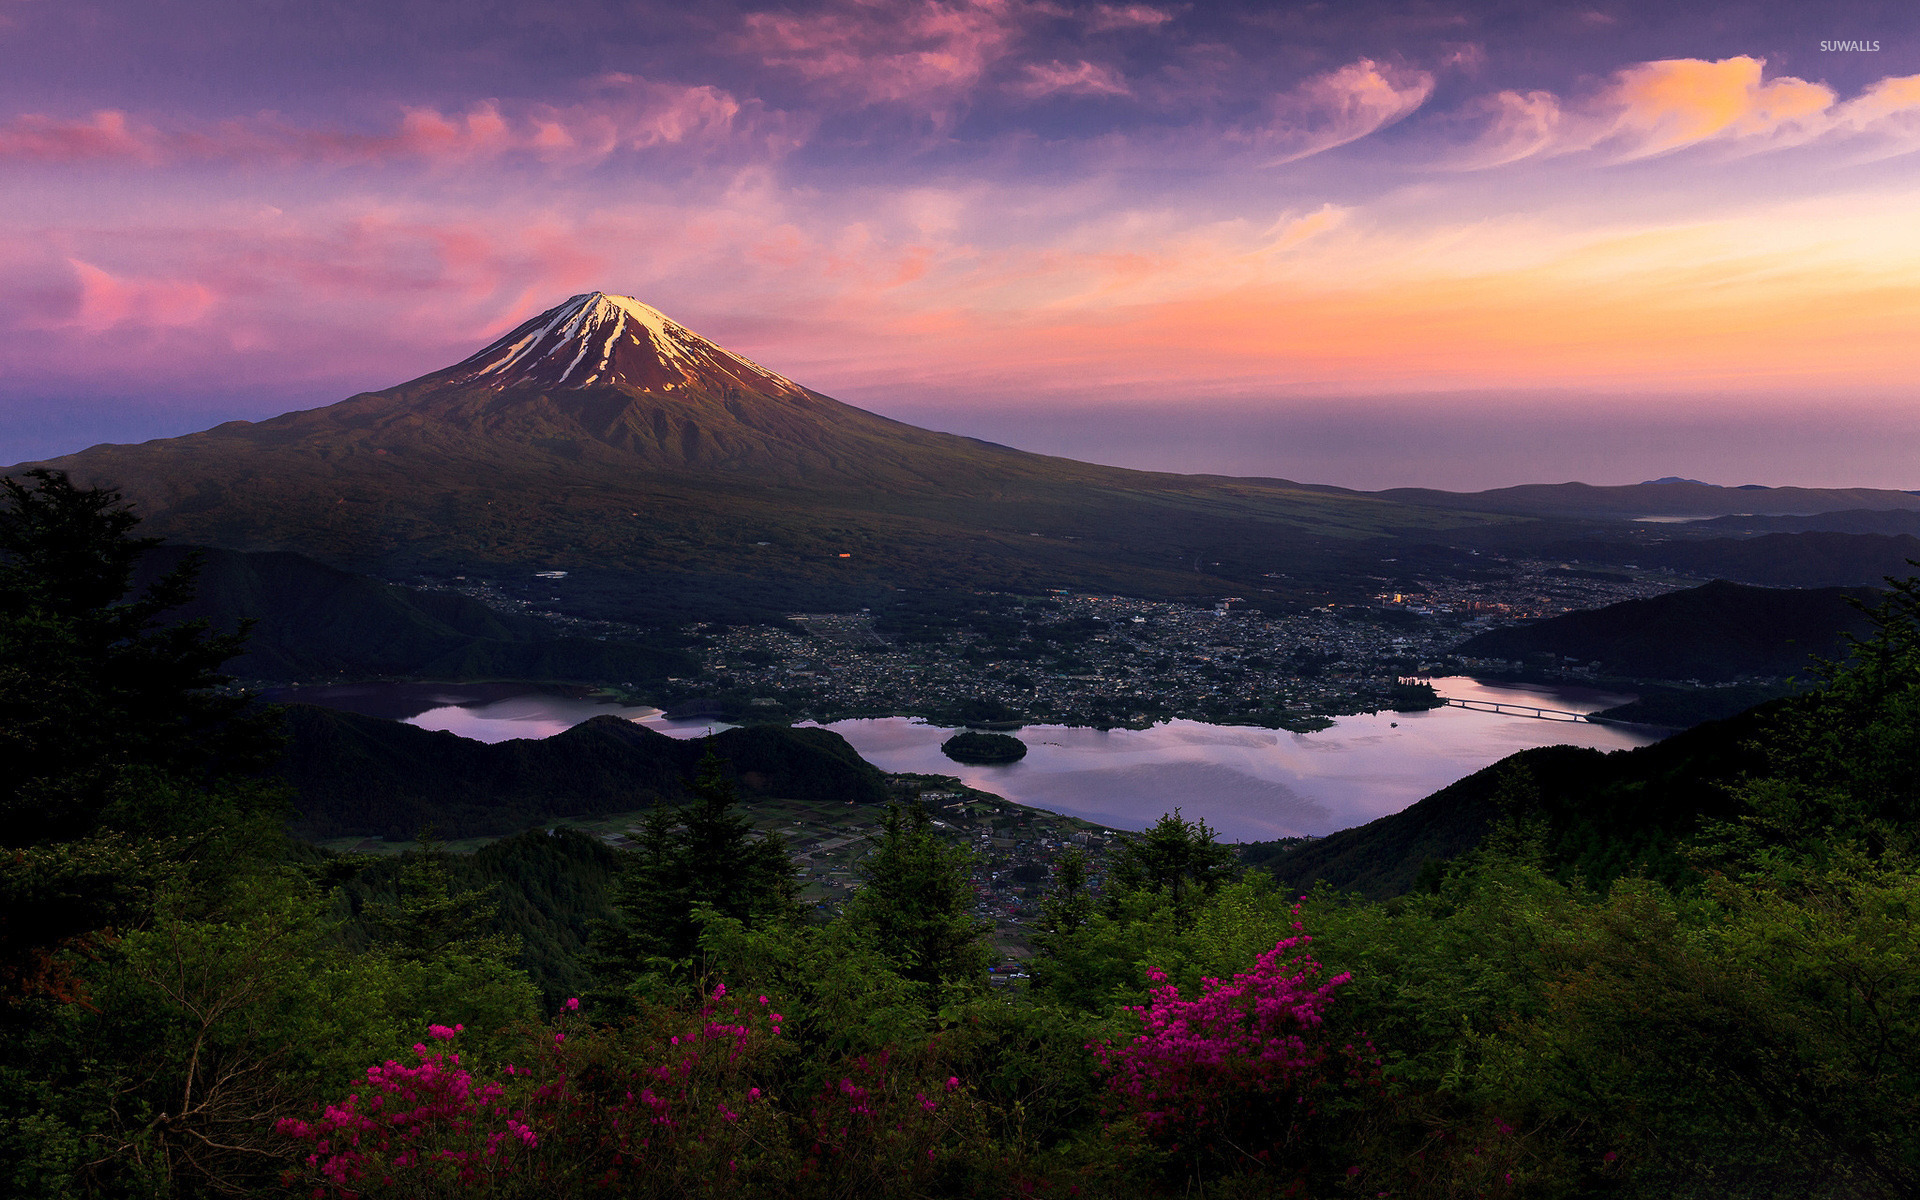 Mount Fuji 3 Wallpaper Nature Wallpapers 42037